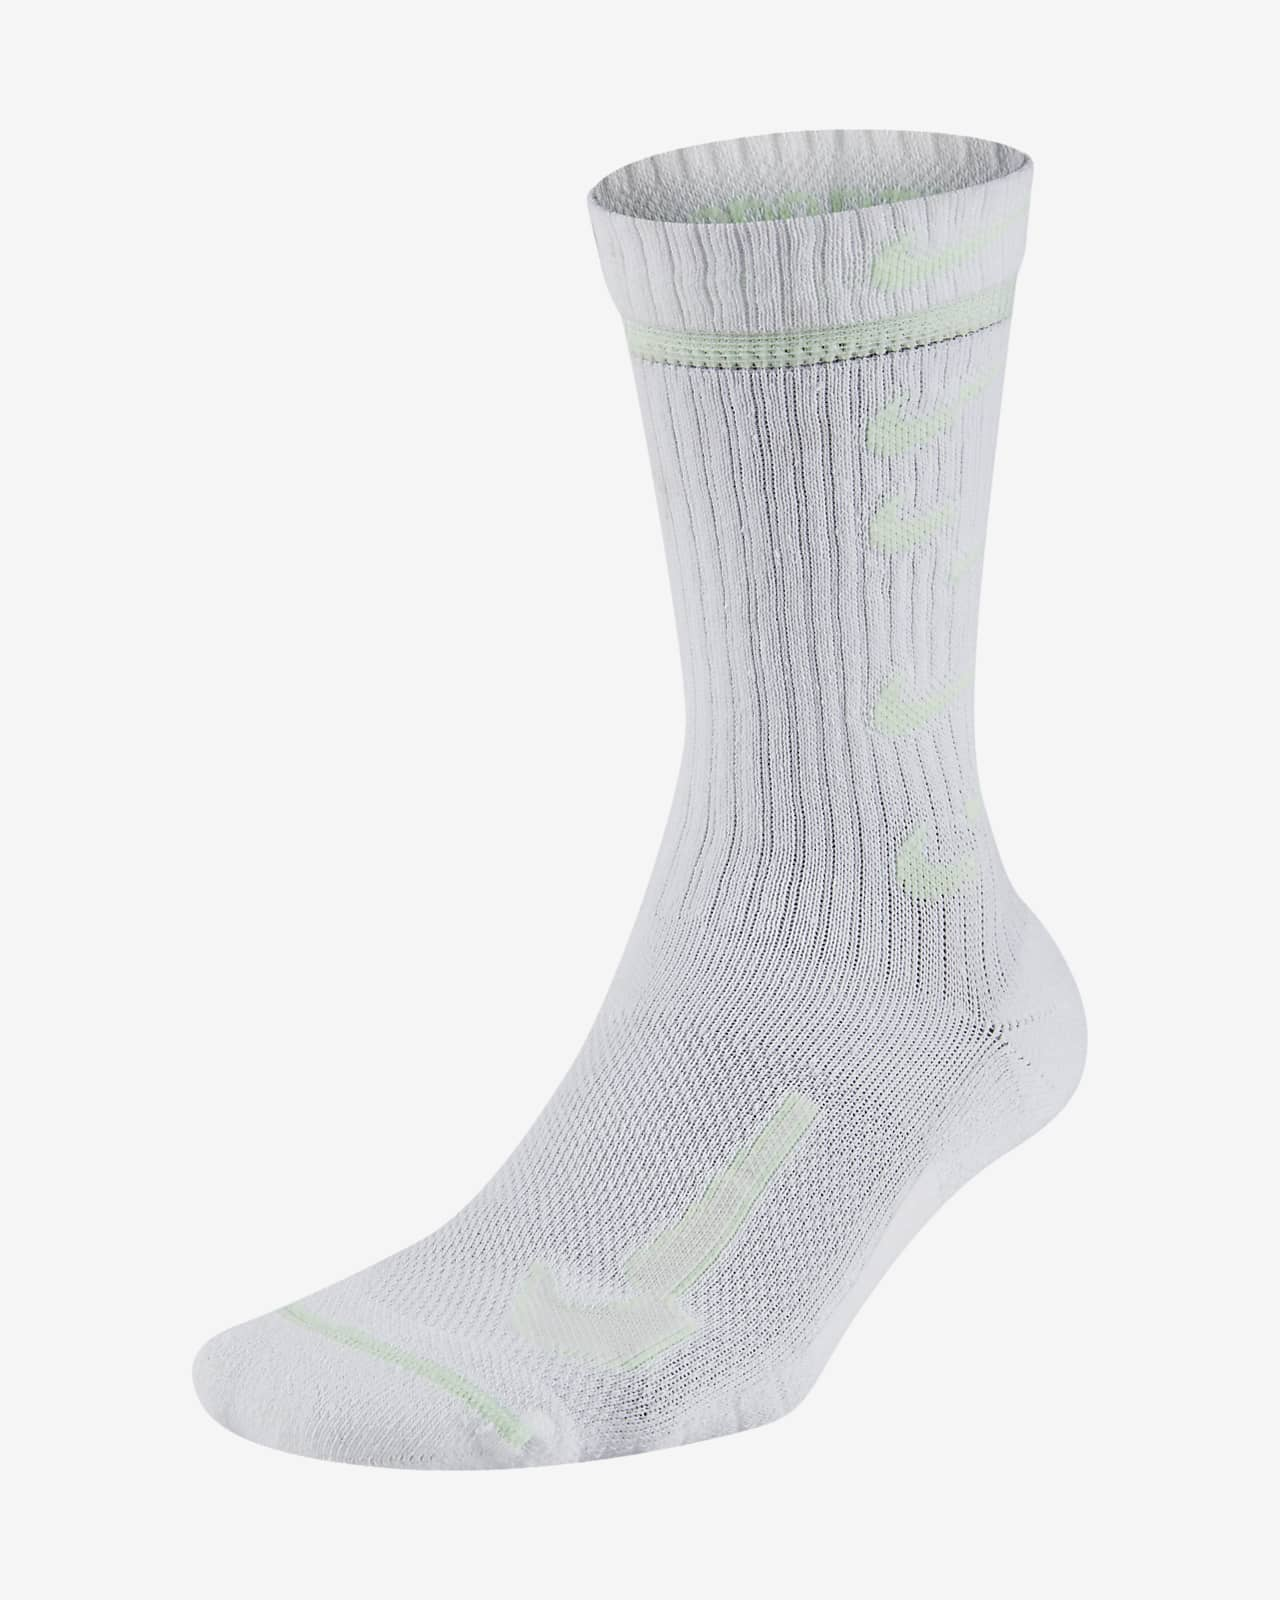 Nike Multiplier Crew Socks